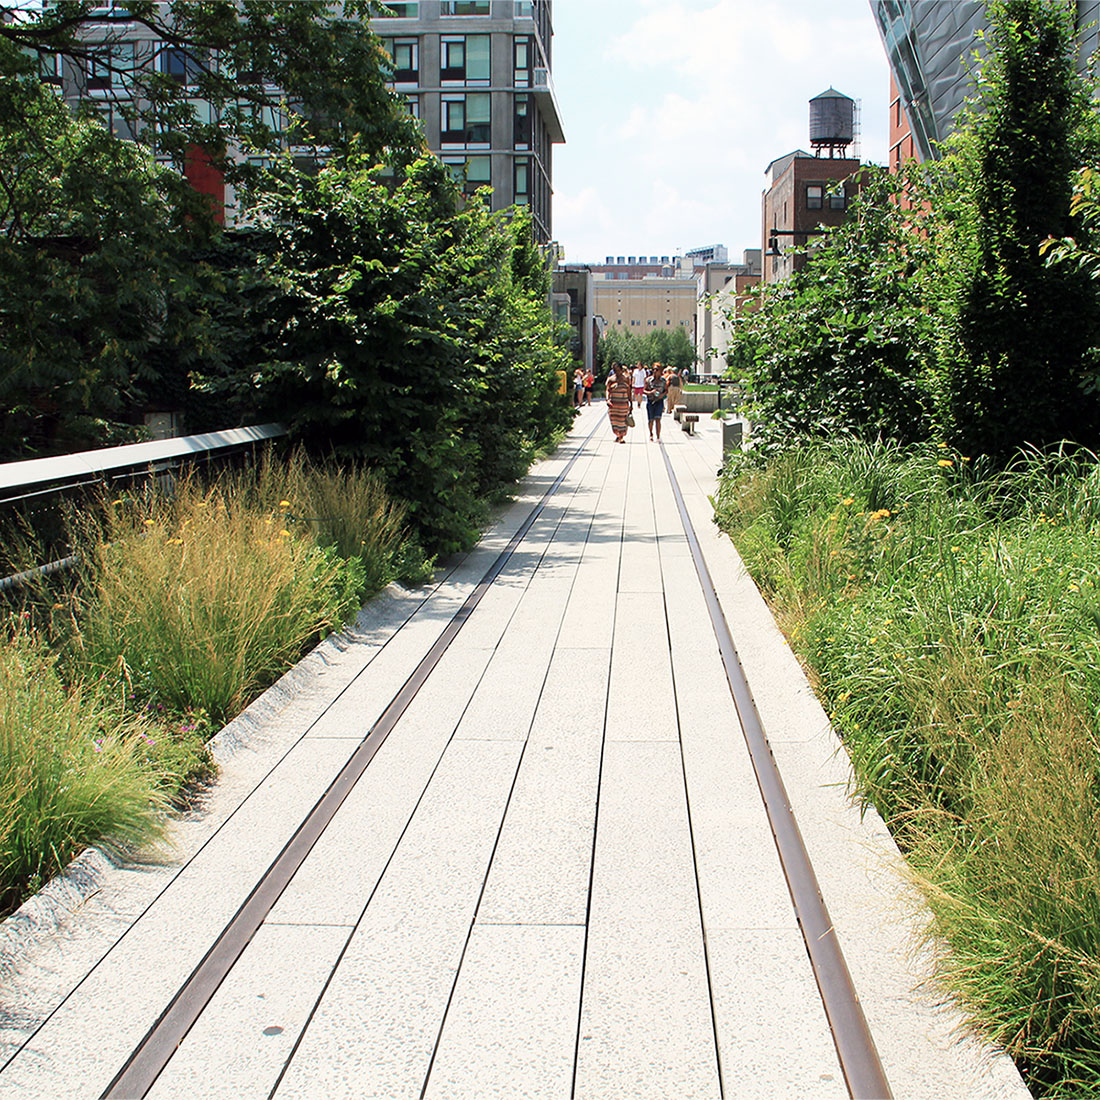 Green gentrification and how to avoid it    Article published by Foreground   Parks improve our neighbourhoods, boost our health, strengthen our communities and combat the effects of climate change. In short, greening our cities make them more liveable. But who really benefits?